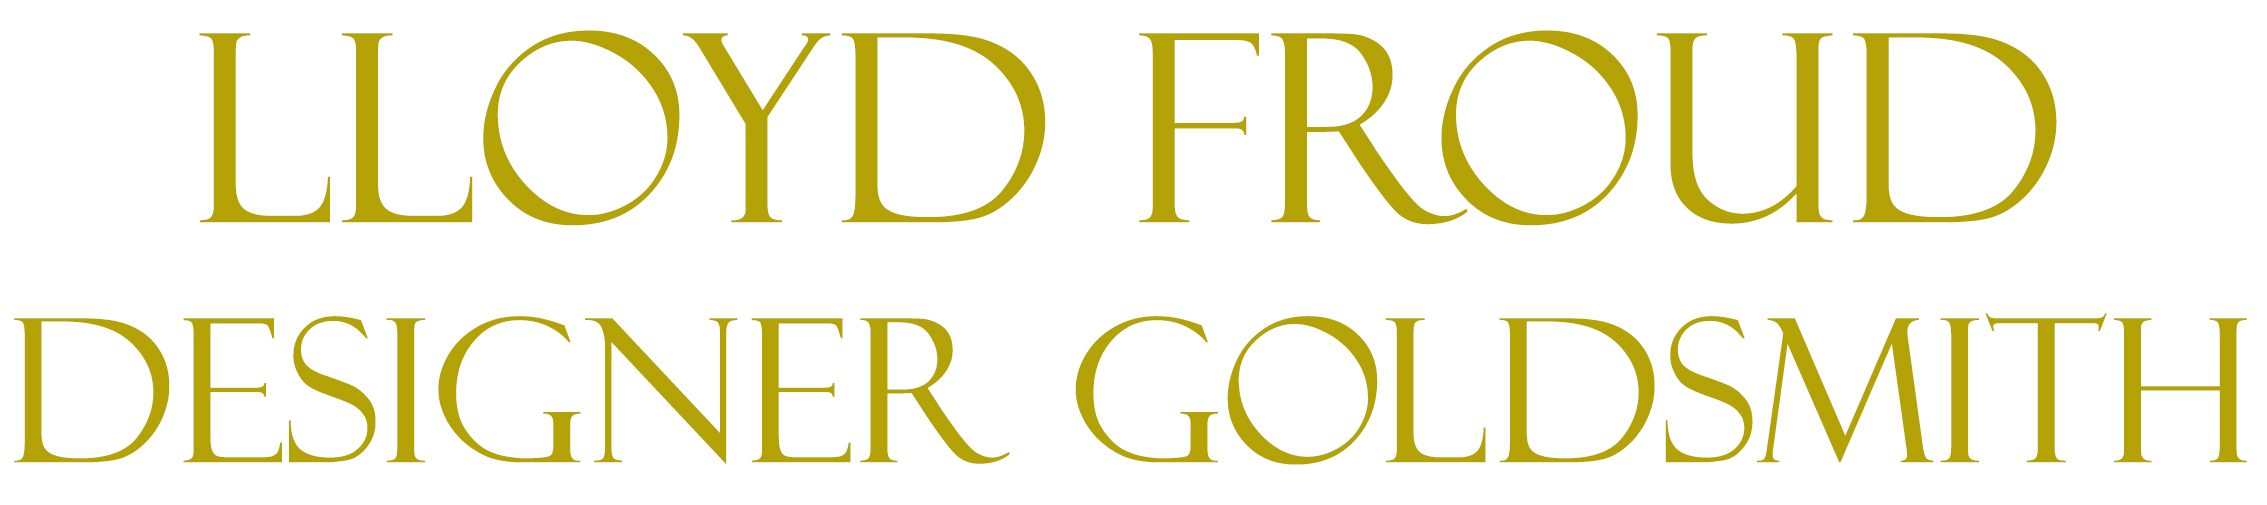 Lloyd Froud Master Designer Goldsmith